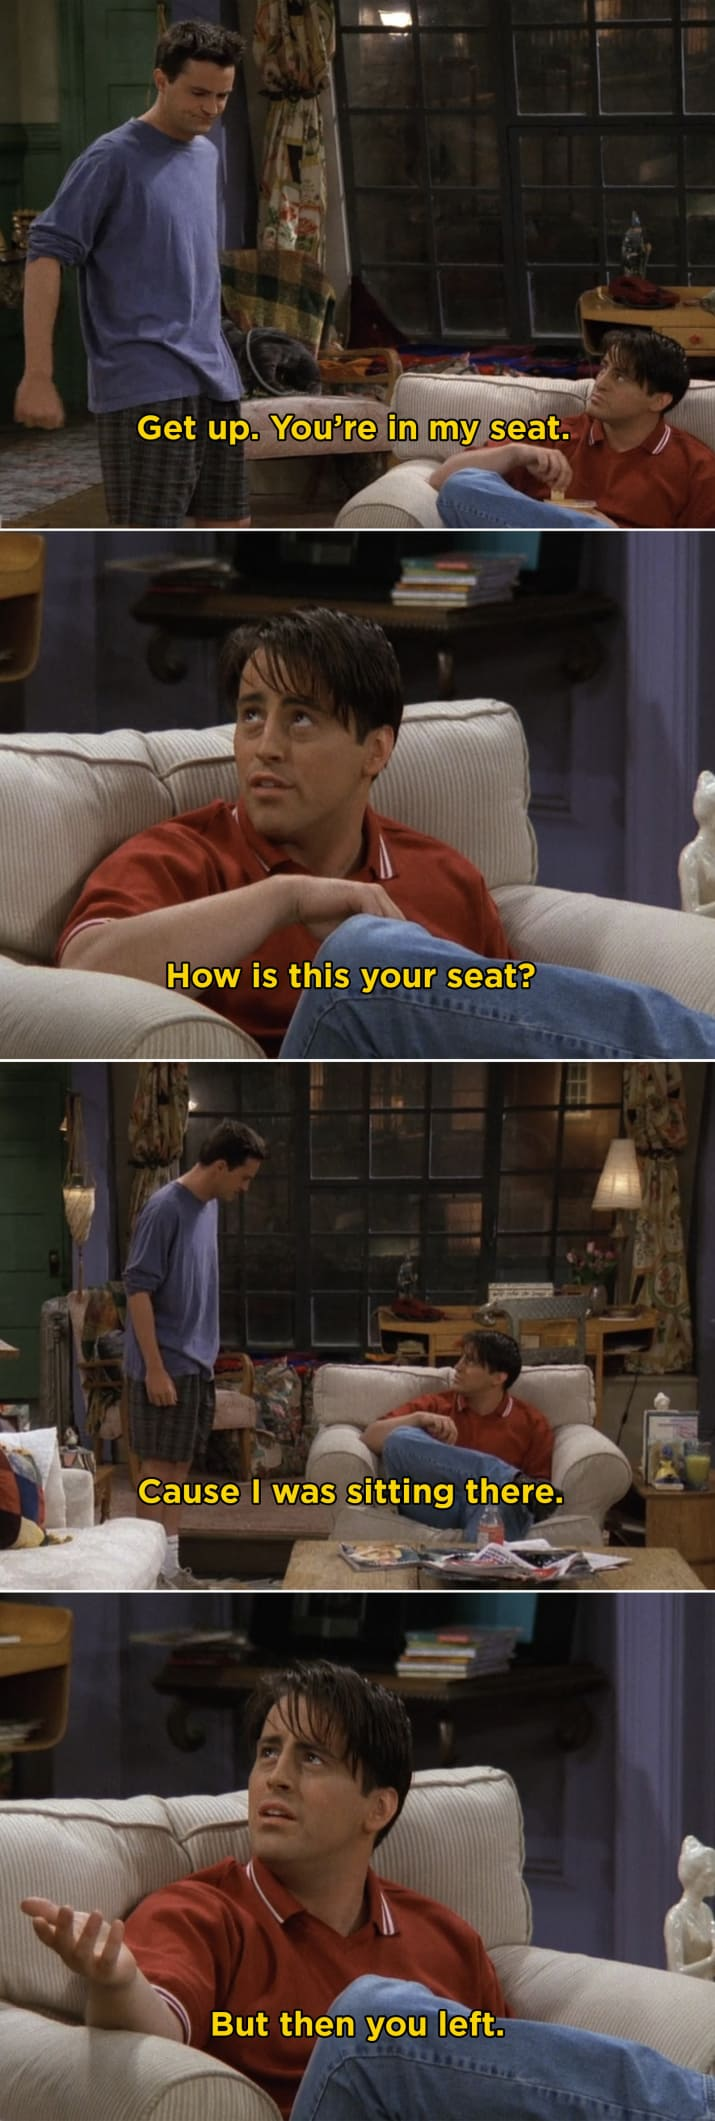 When Joey and Chandler made such a big deal